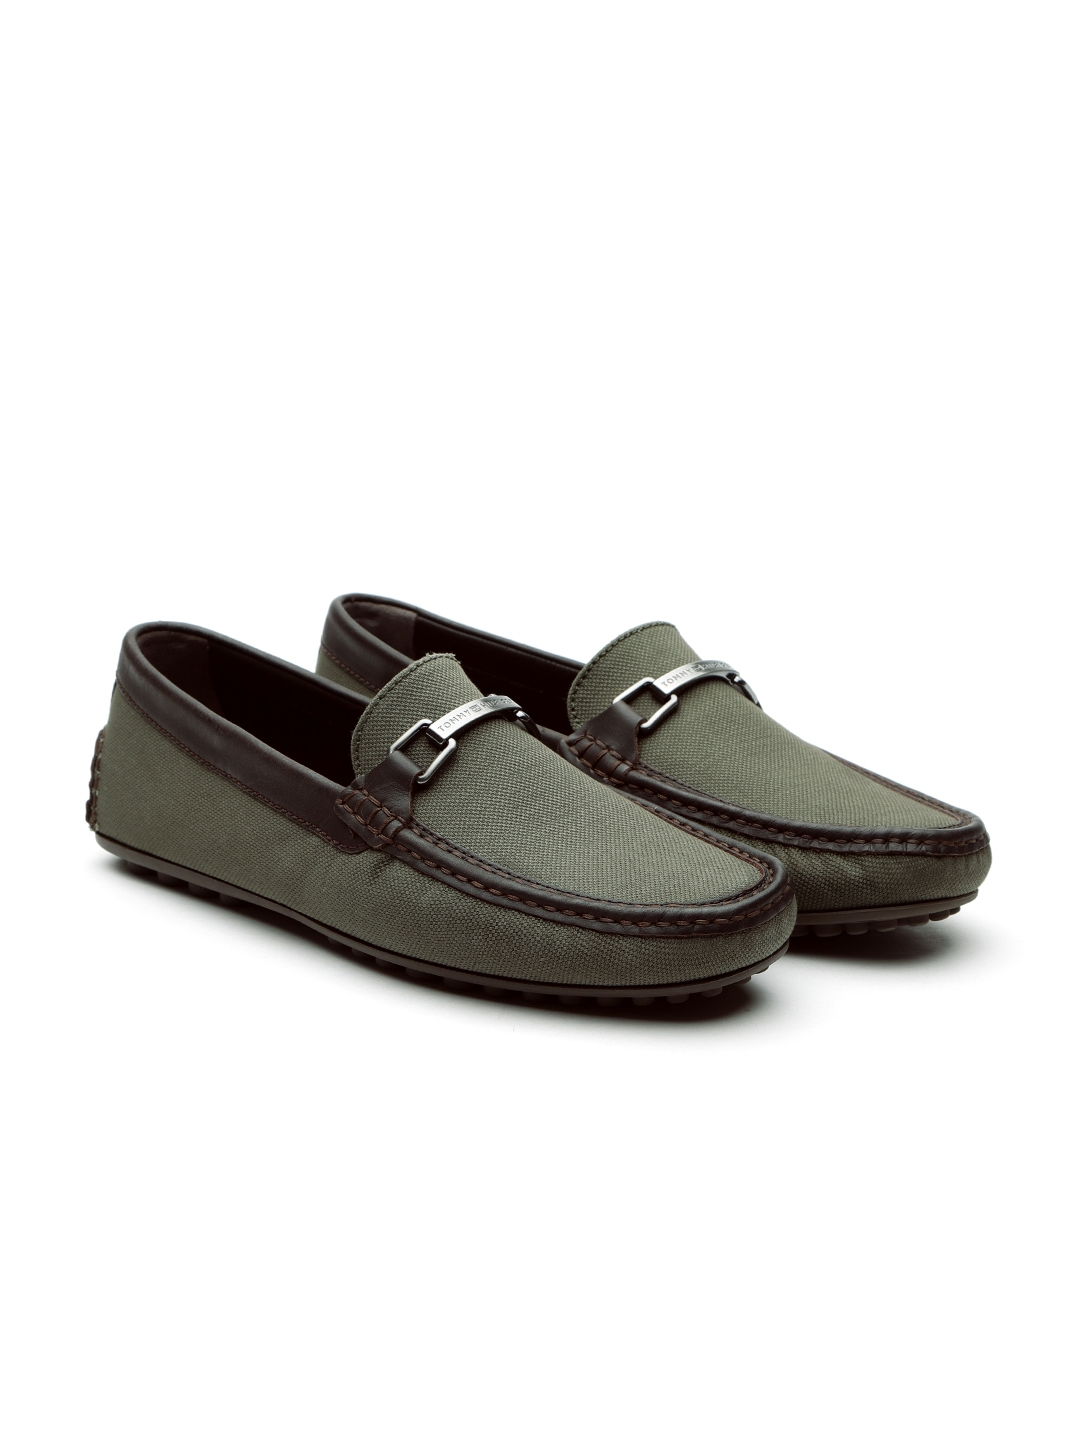 47769215f Buy Tommy Hilfiger Men Olive Green Loafers - Casual Shoes for Men ...